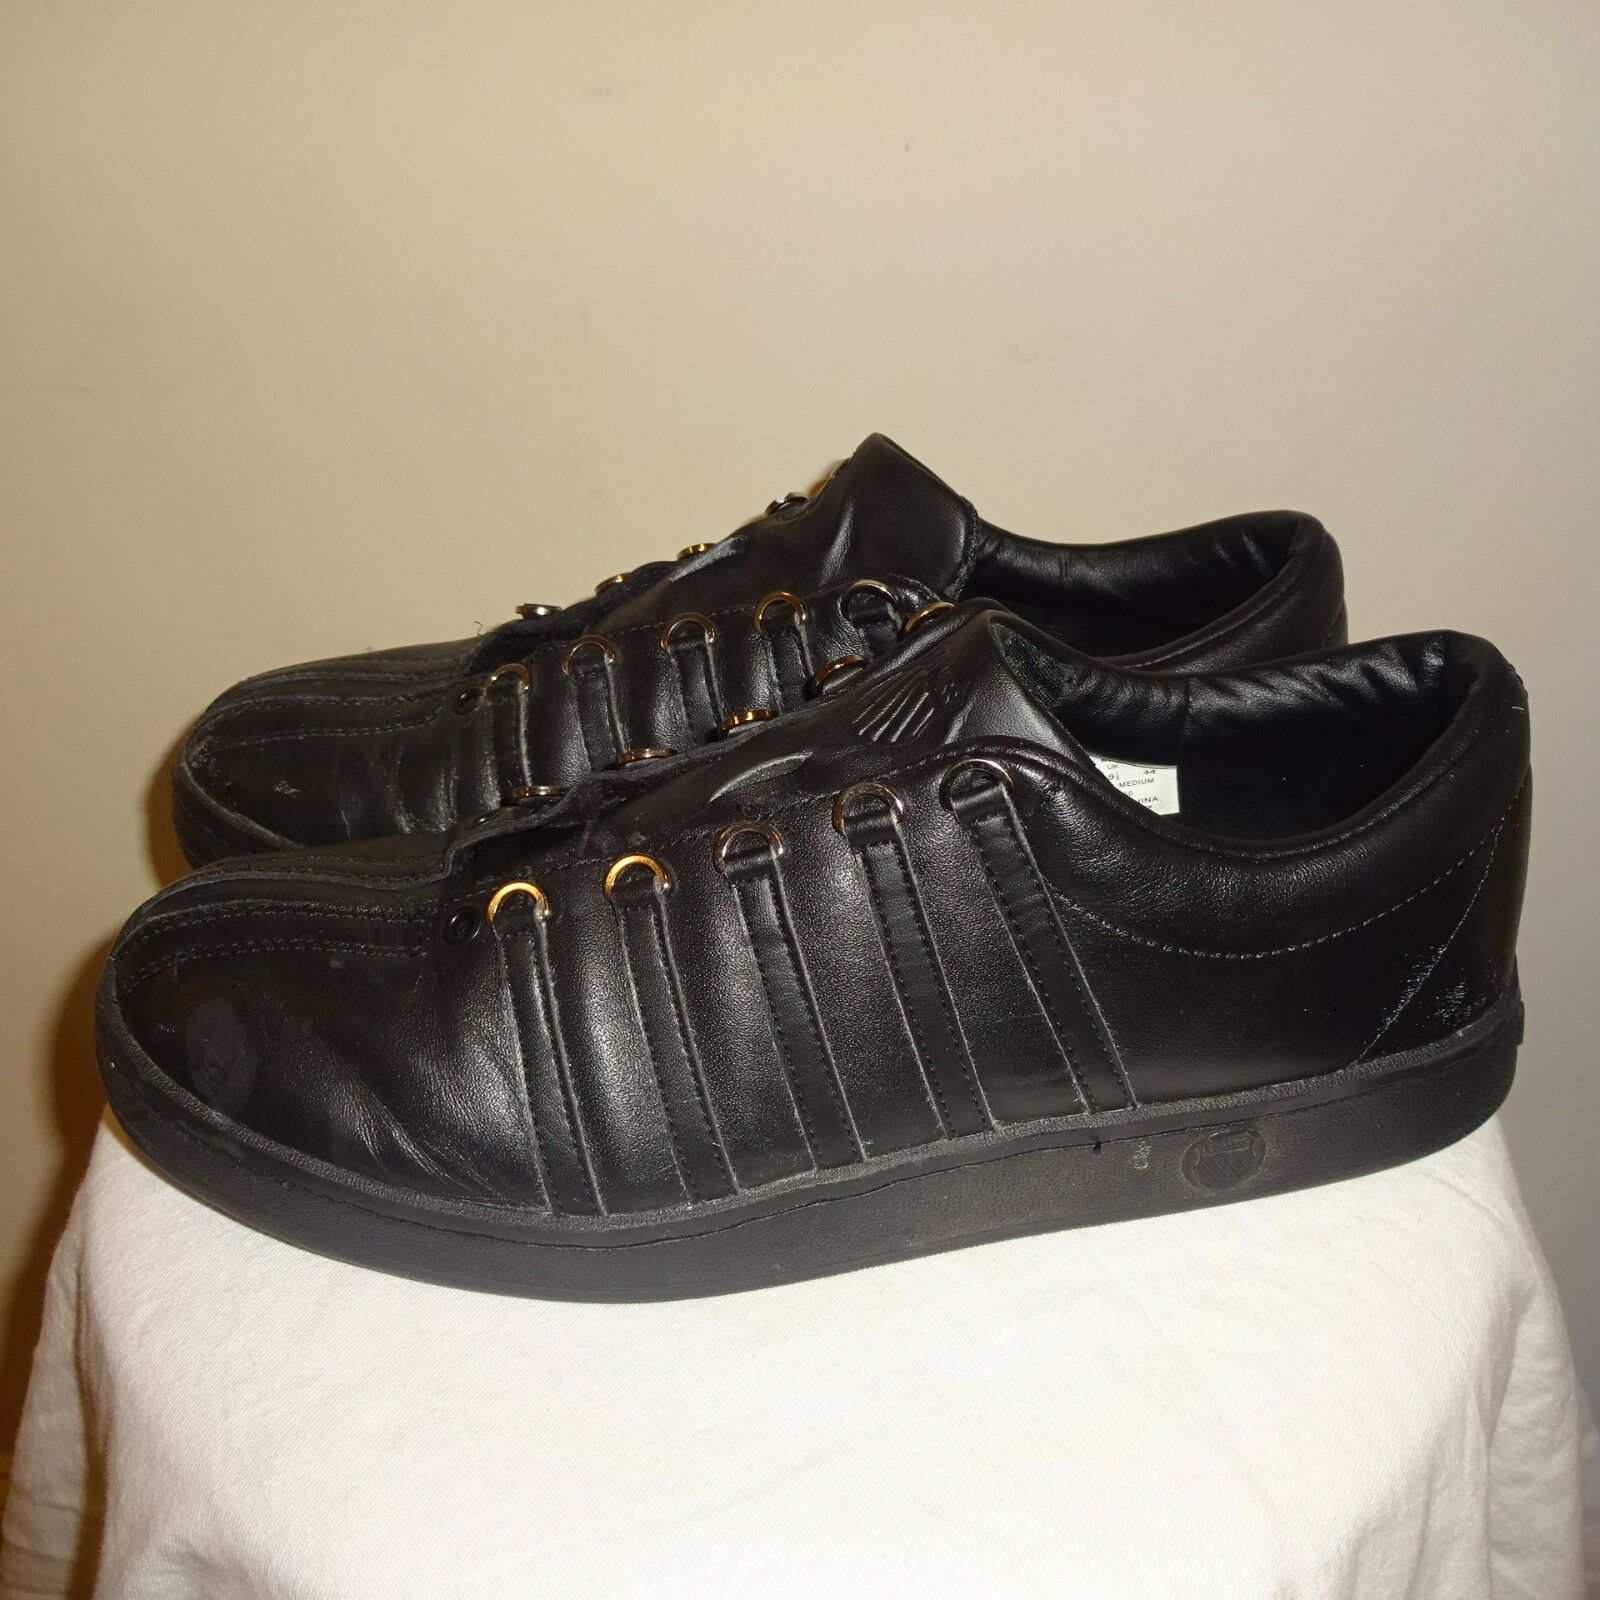 K-Swiss Classic Low Cut Sneakers BLACK Men's Size 10.5